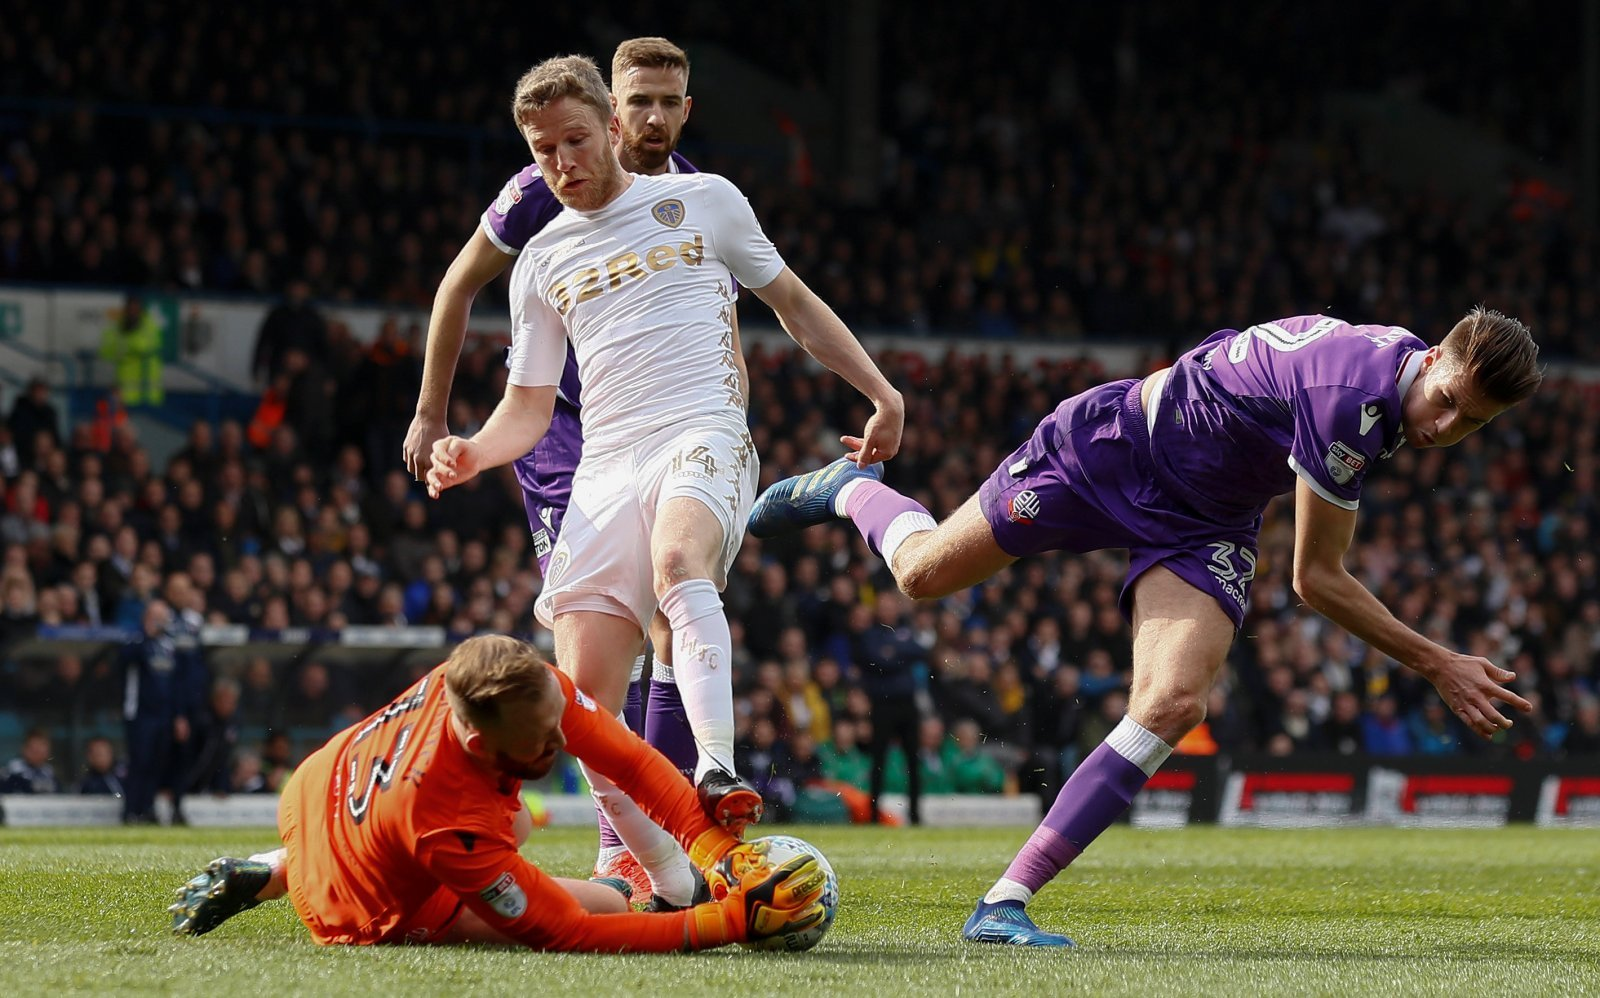 Leeds fans on Twitter gutted for O'Kane as he suffers horror injury